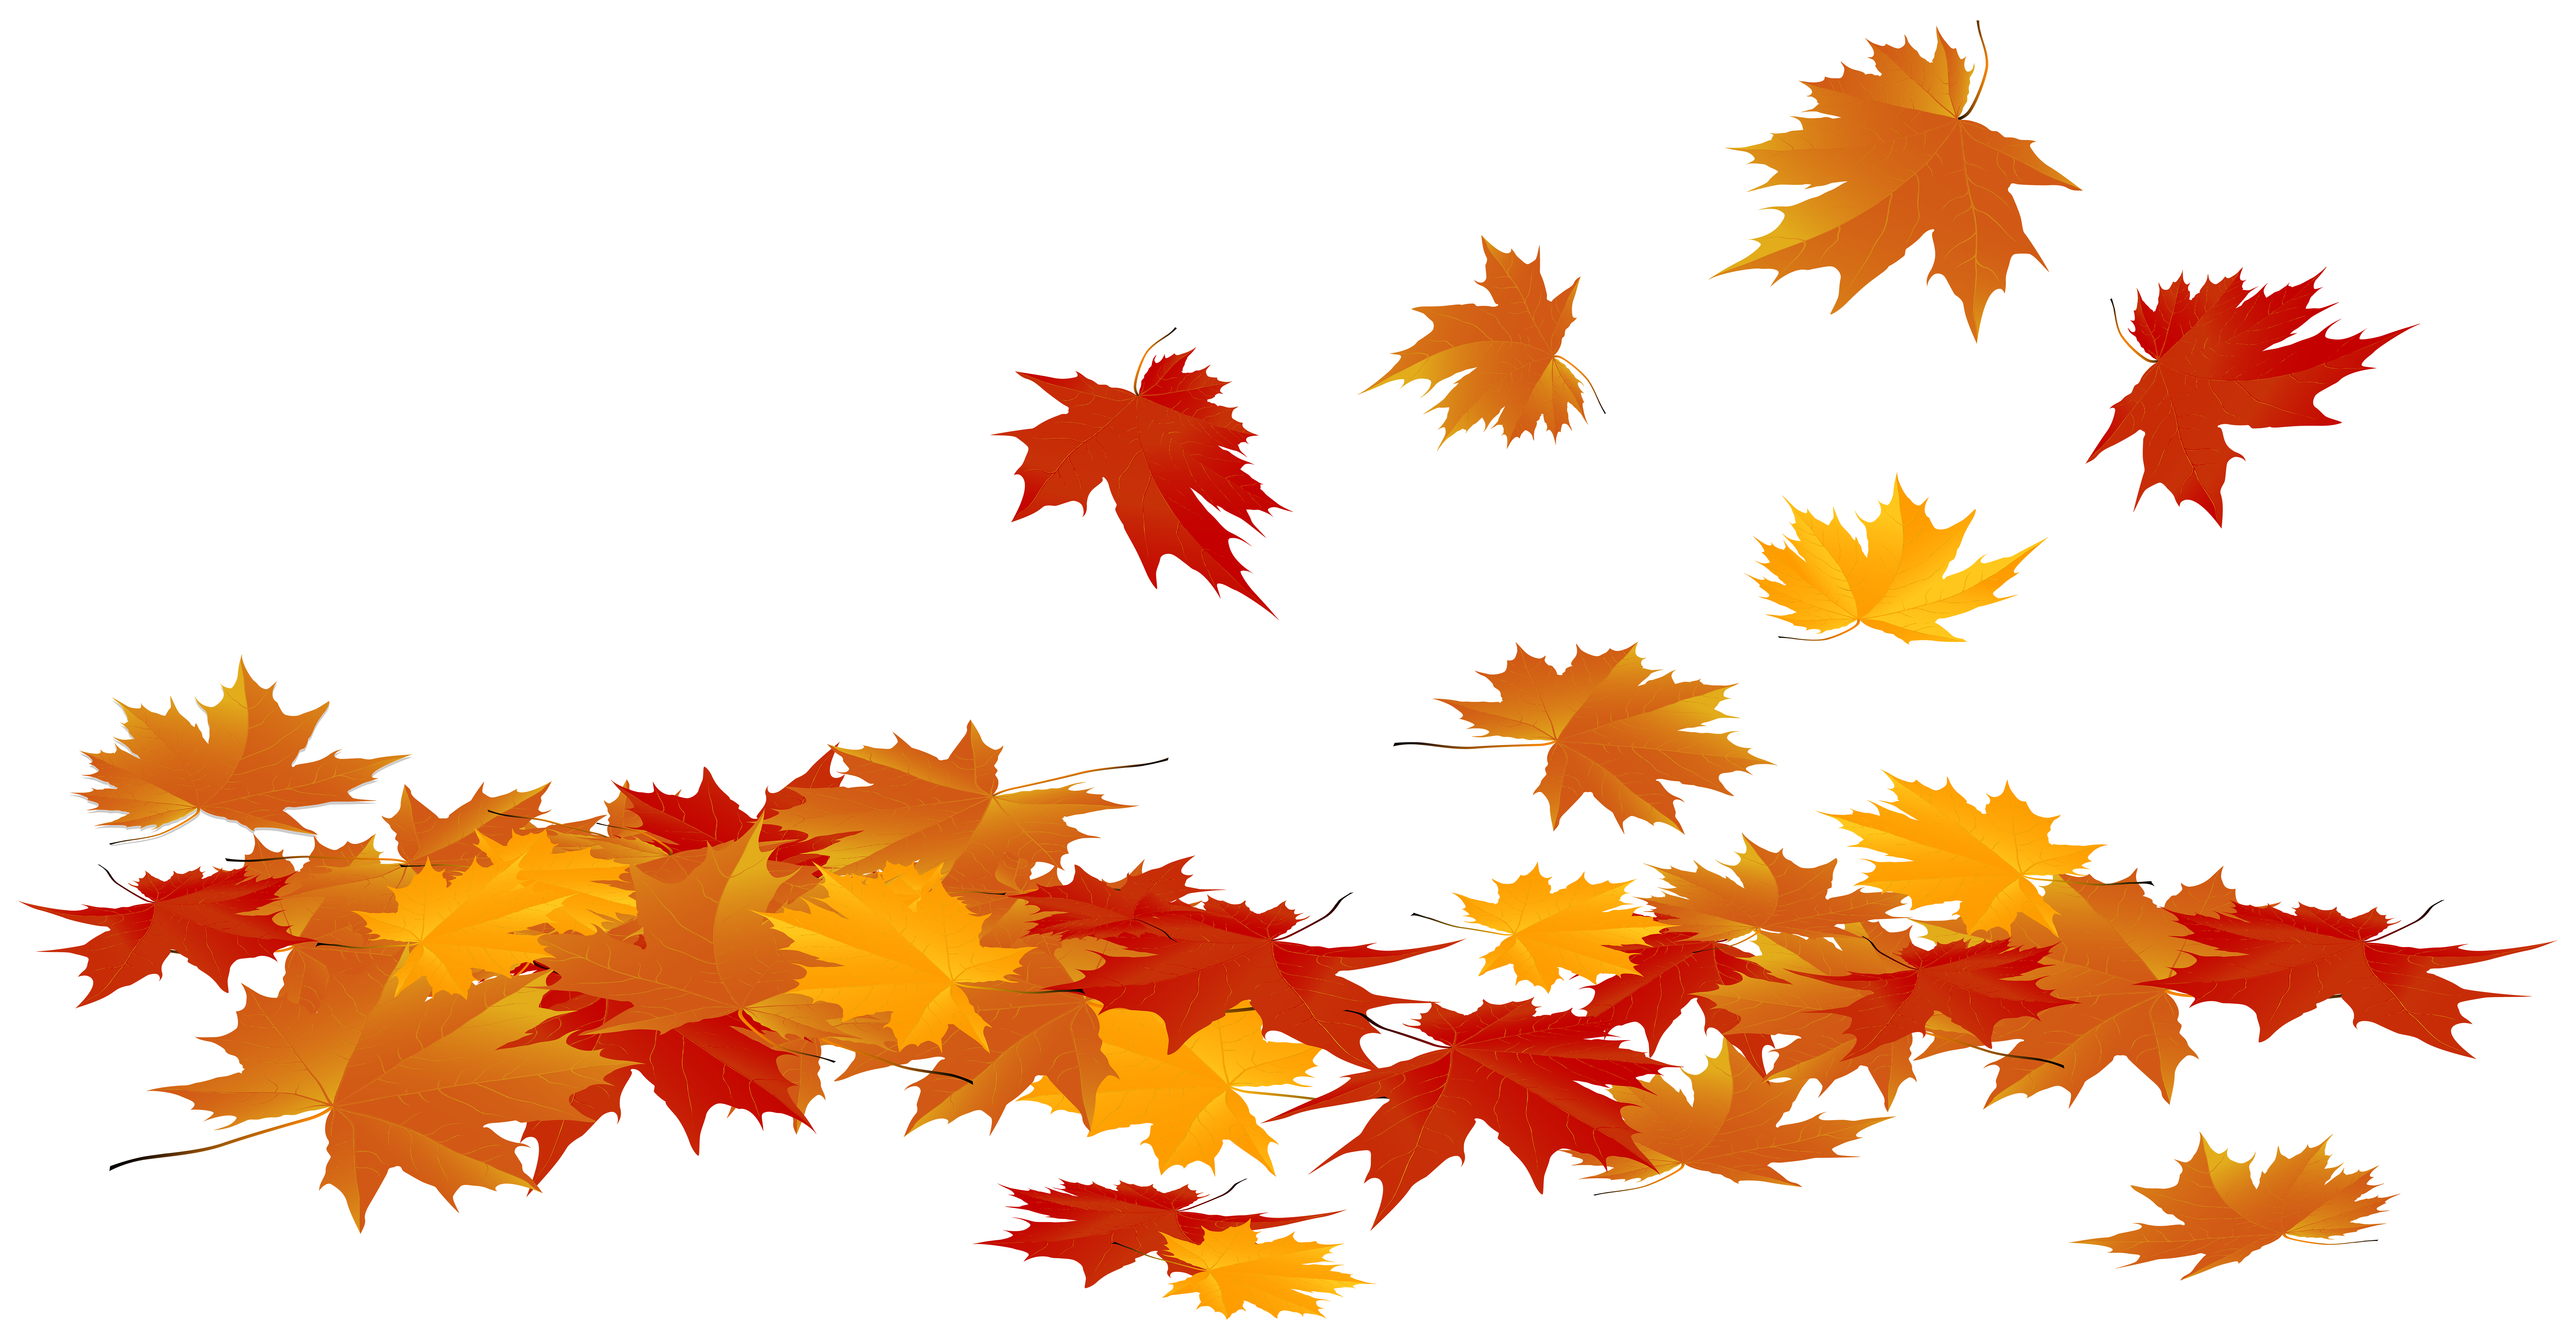 Fallen Autumn Leaves Png Clip Art Image Gallery Yopriceville High Quality Images And Transparent Png Fr Autumn Leaves Wallpaper Art Images Leaf Silhouette